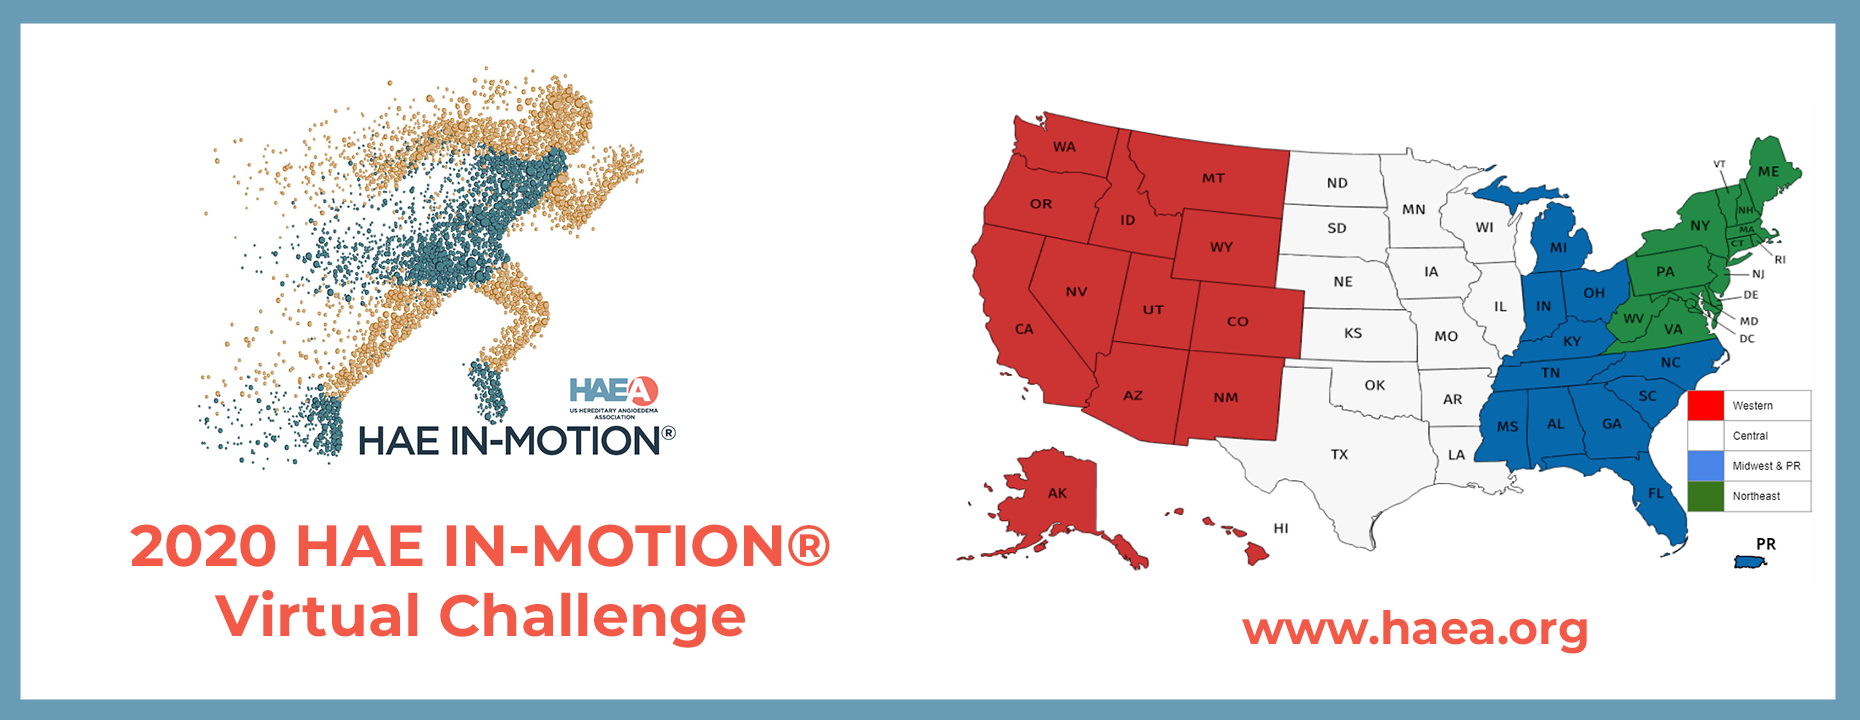 HAEA Community Steps Up For the 2020 HAE IN-MOTION® Virtual Challenge!